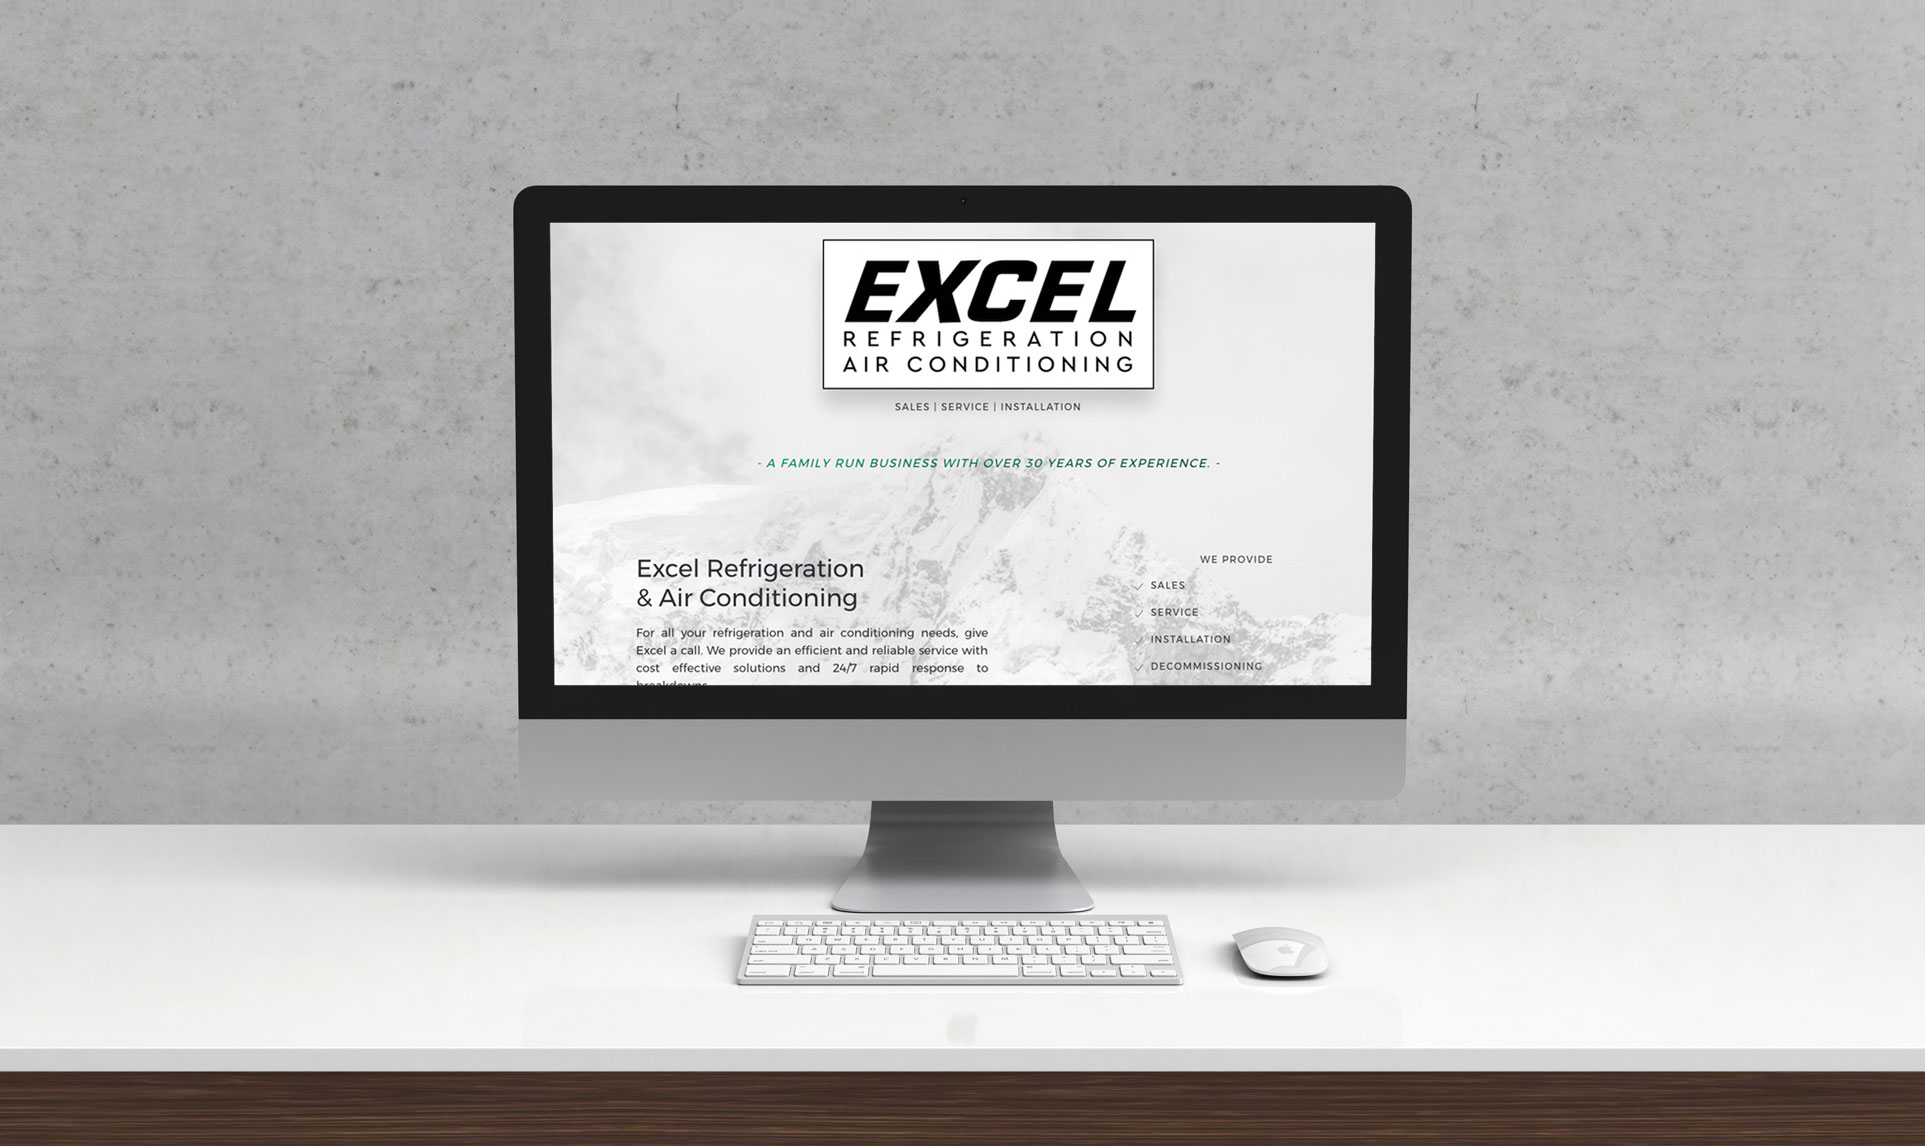 Excel Refrigeration & Air Conditioning